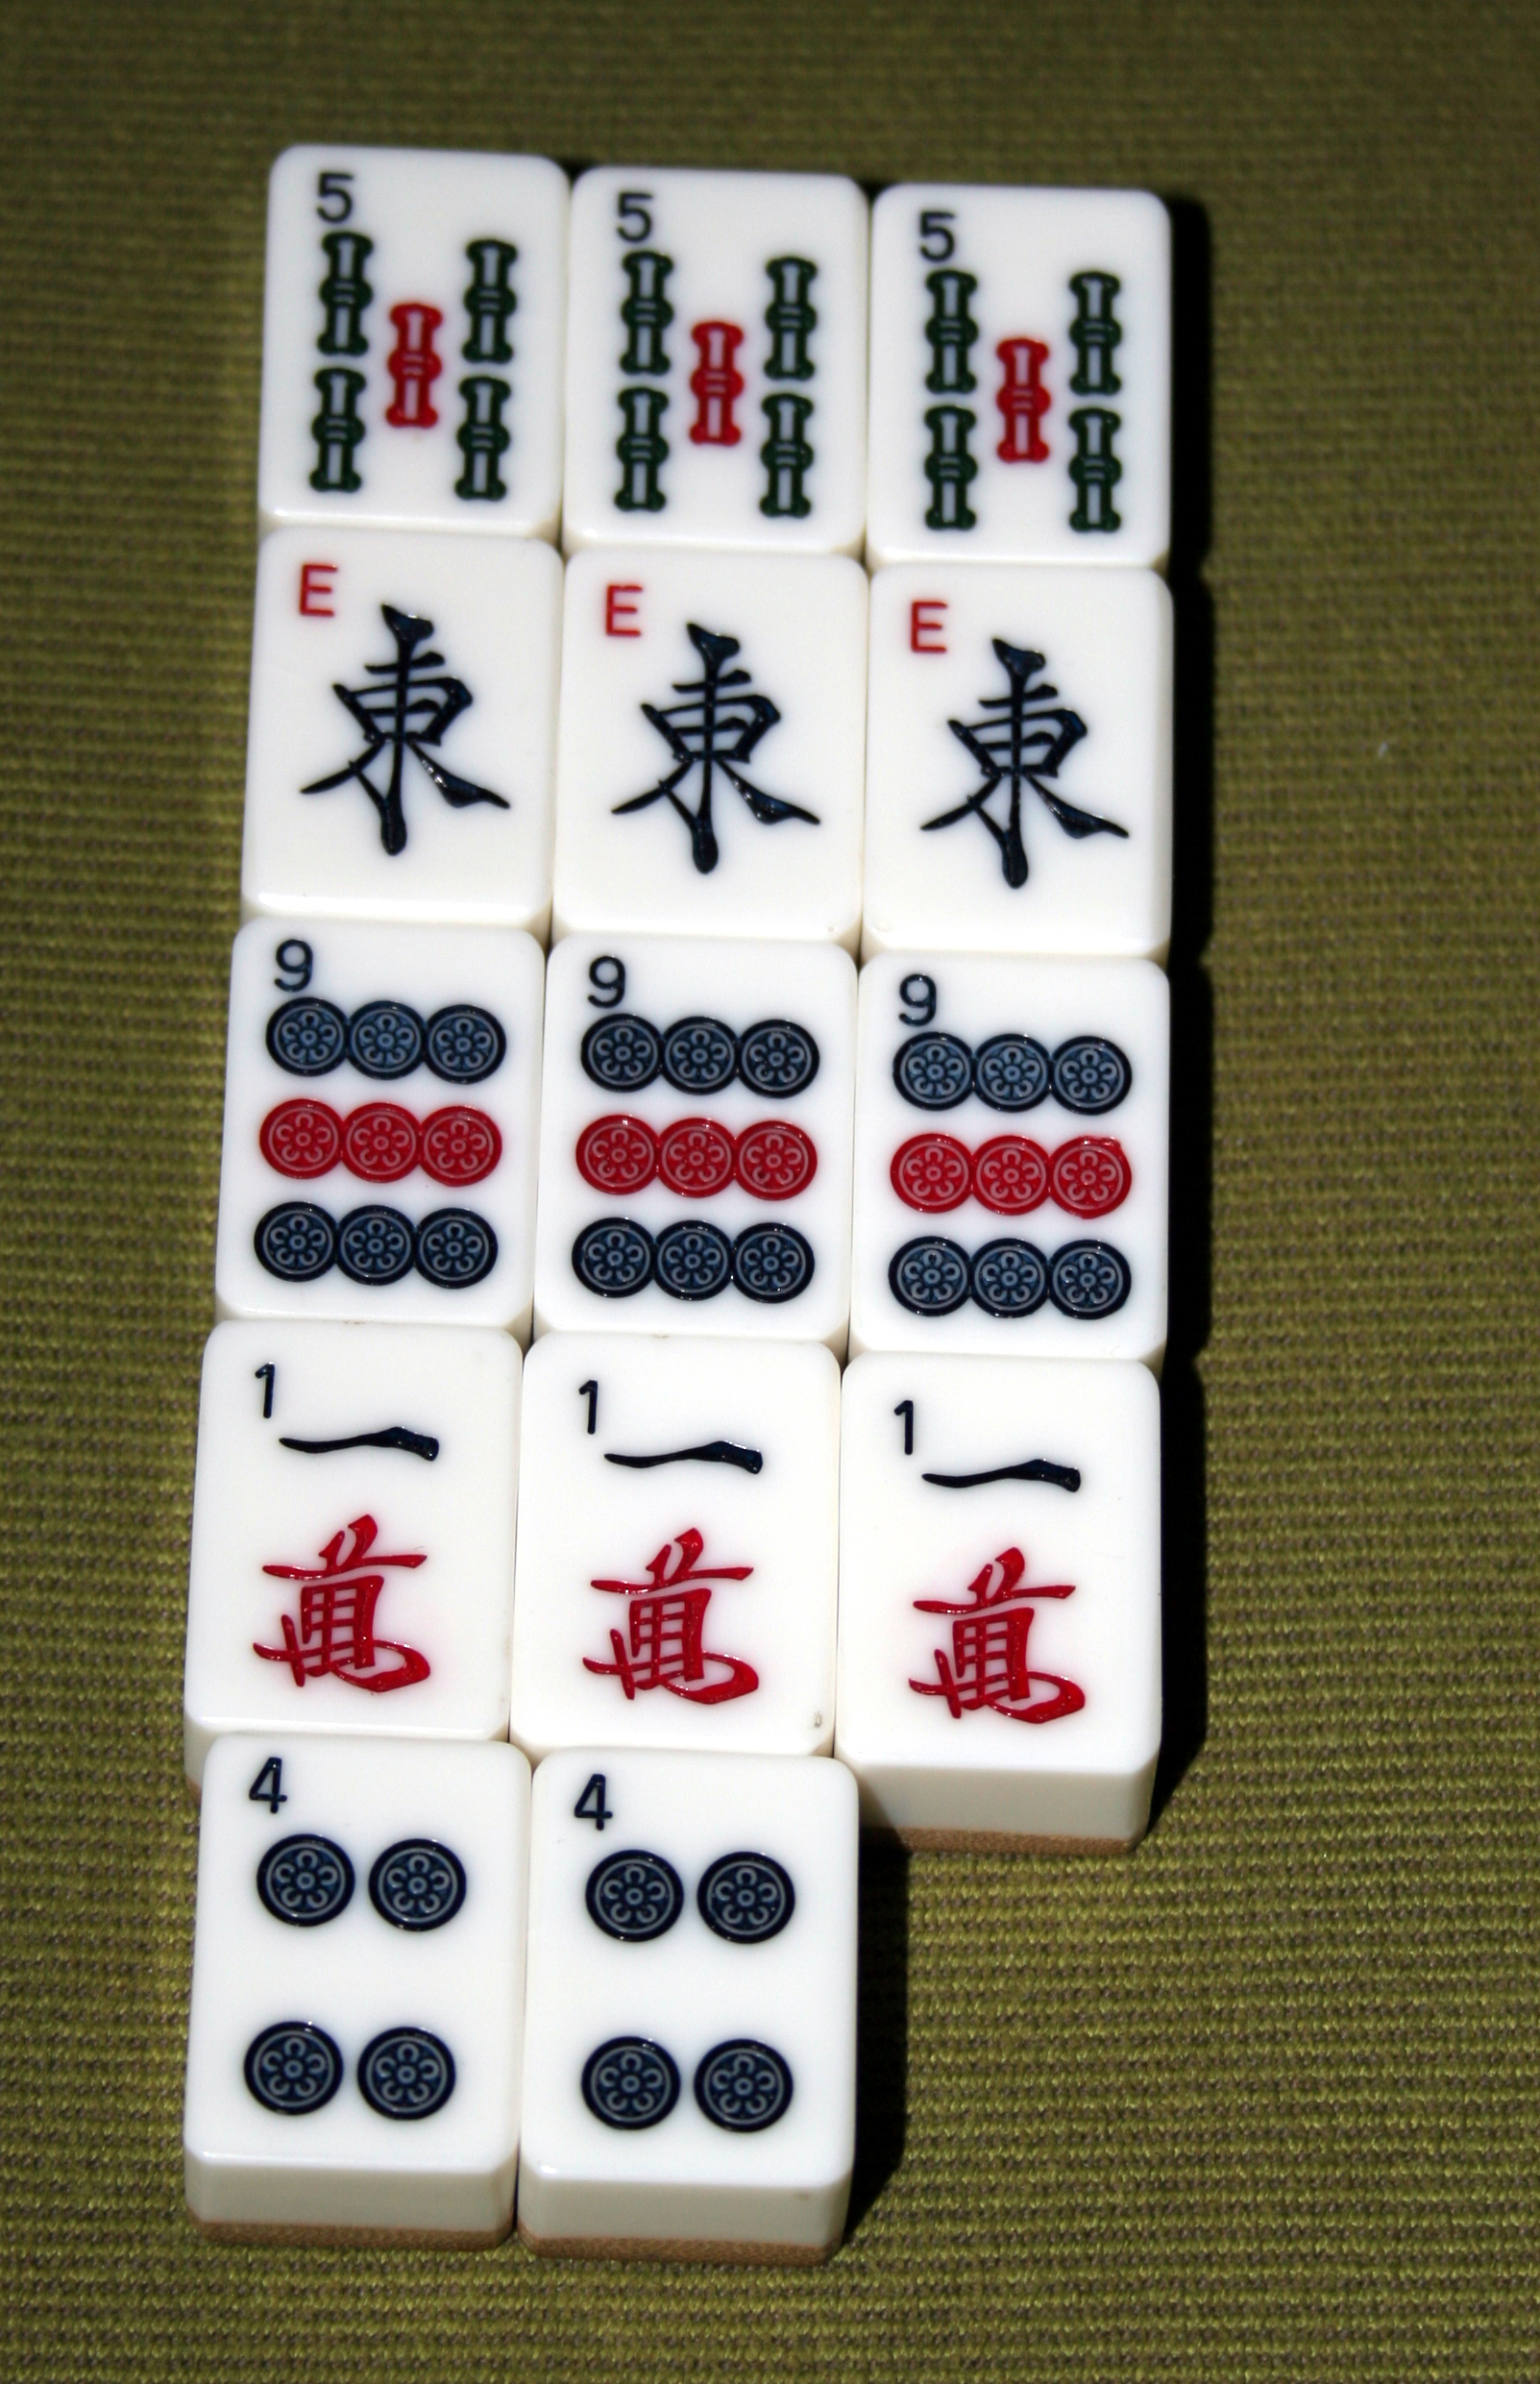 photograph regarding Mahjong Card Printable identify American mahjong - Wikipedia